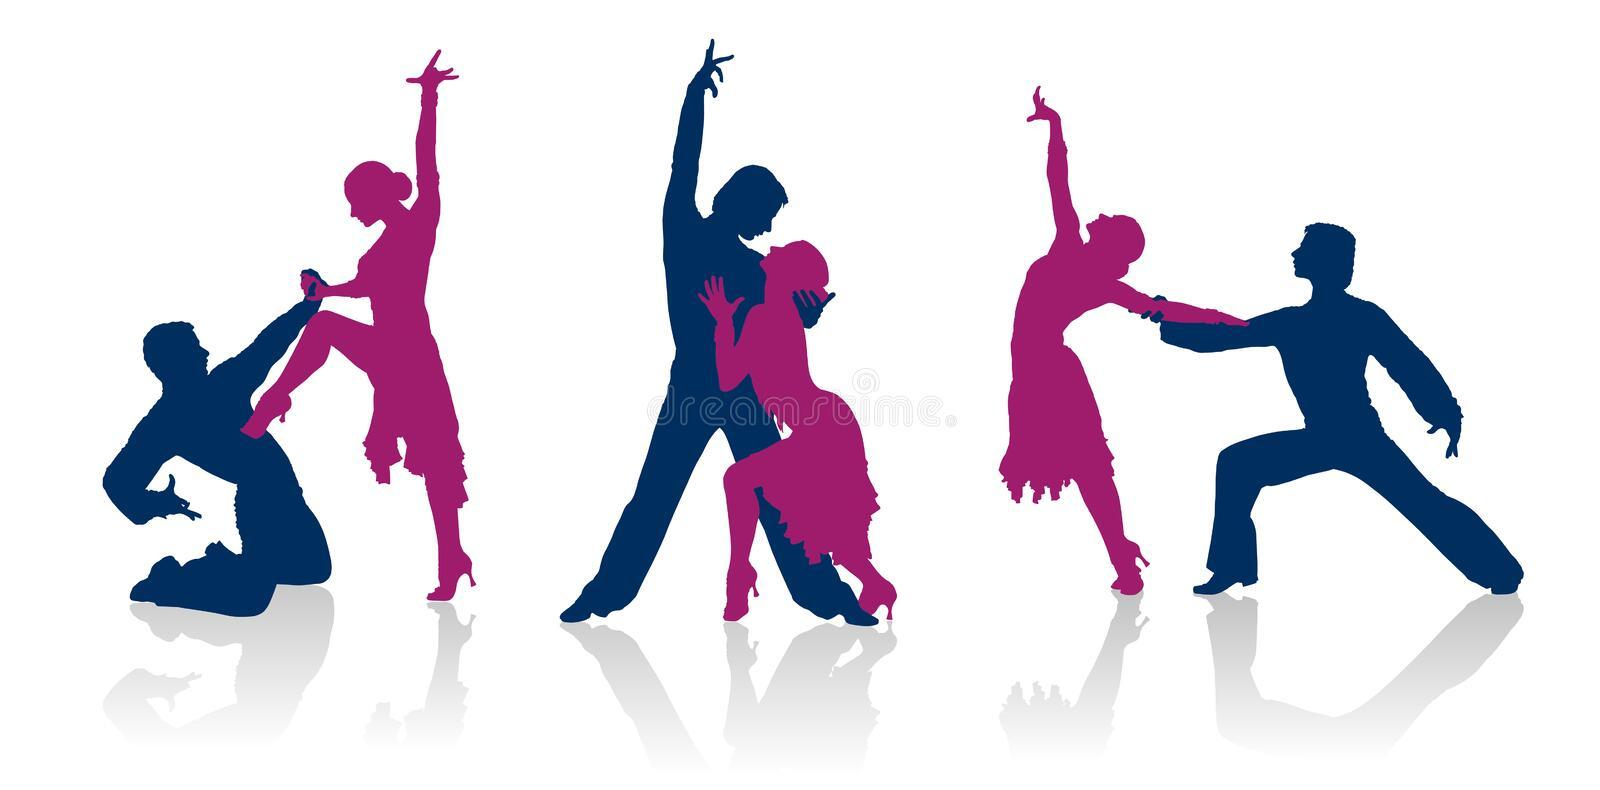 Ballroom dancers silhouettes royalty free stock photo